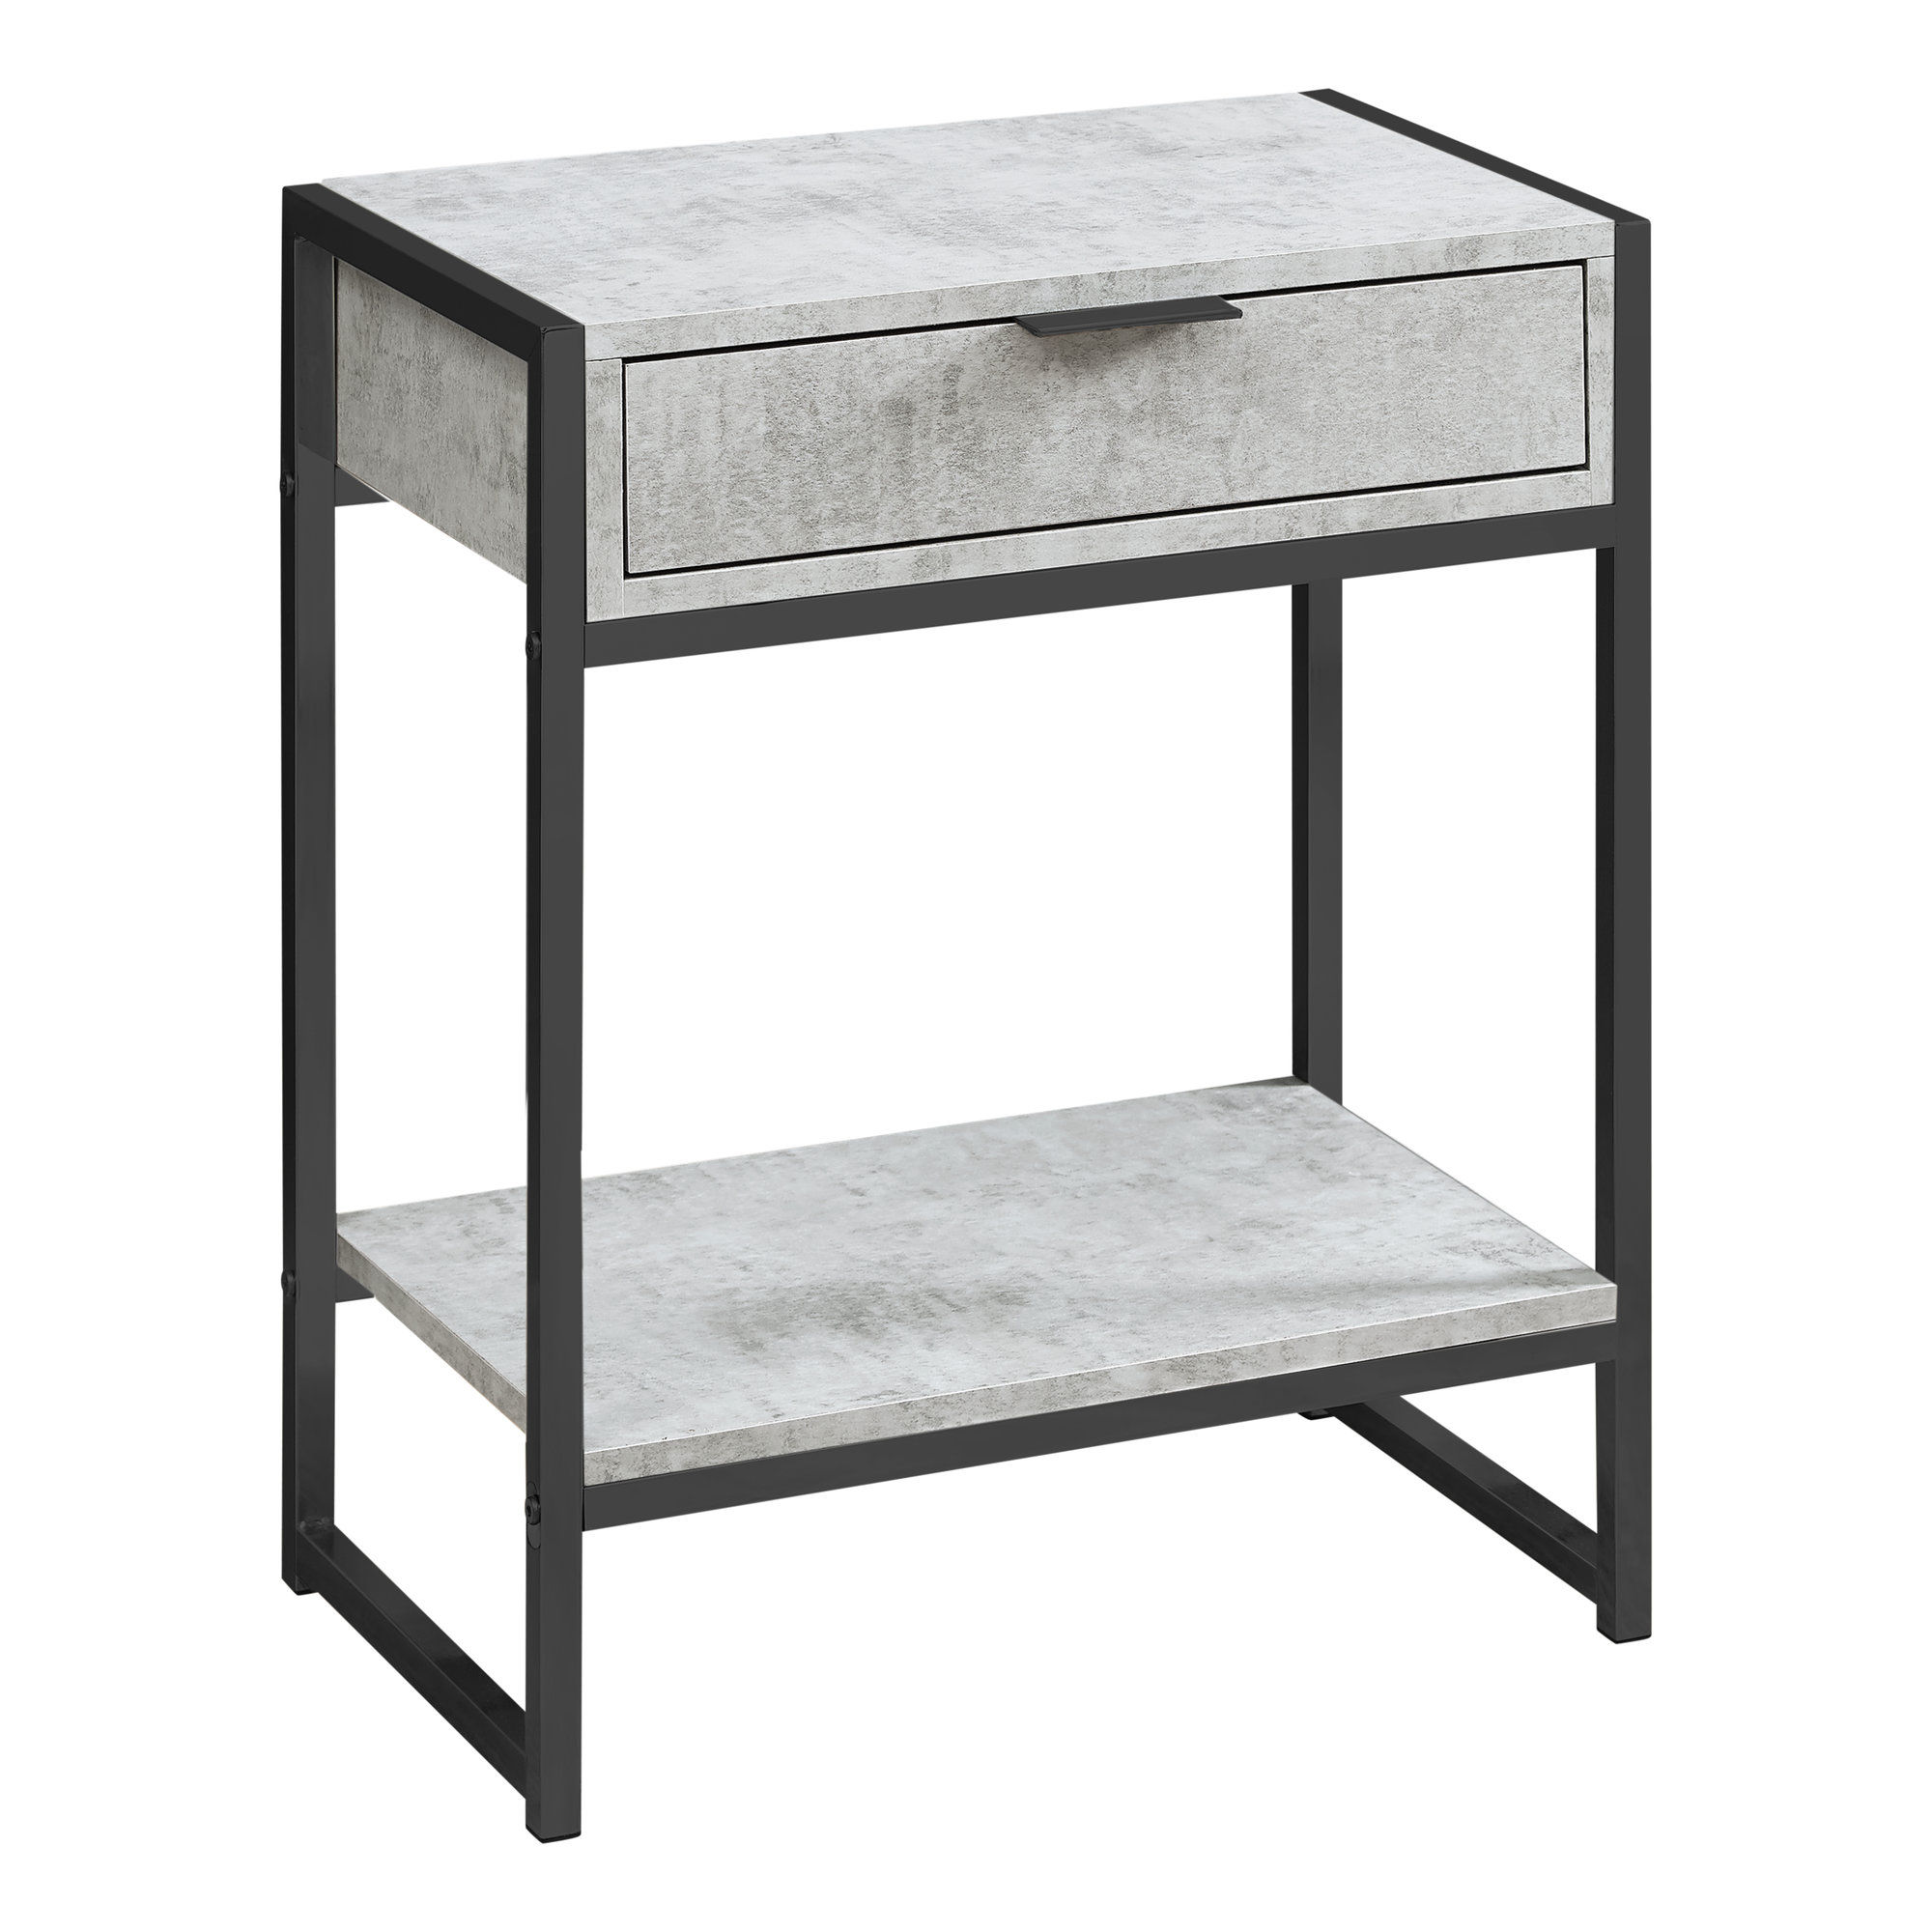 monarch specialties grey cement accent table the classy home mnc click enlarge storage chest seat ikea bistro and chairs best cantilever umbrella large marble top coffee furniture